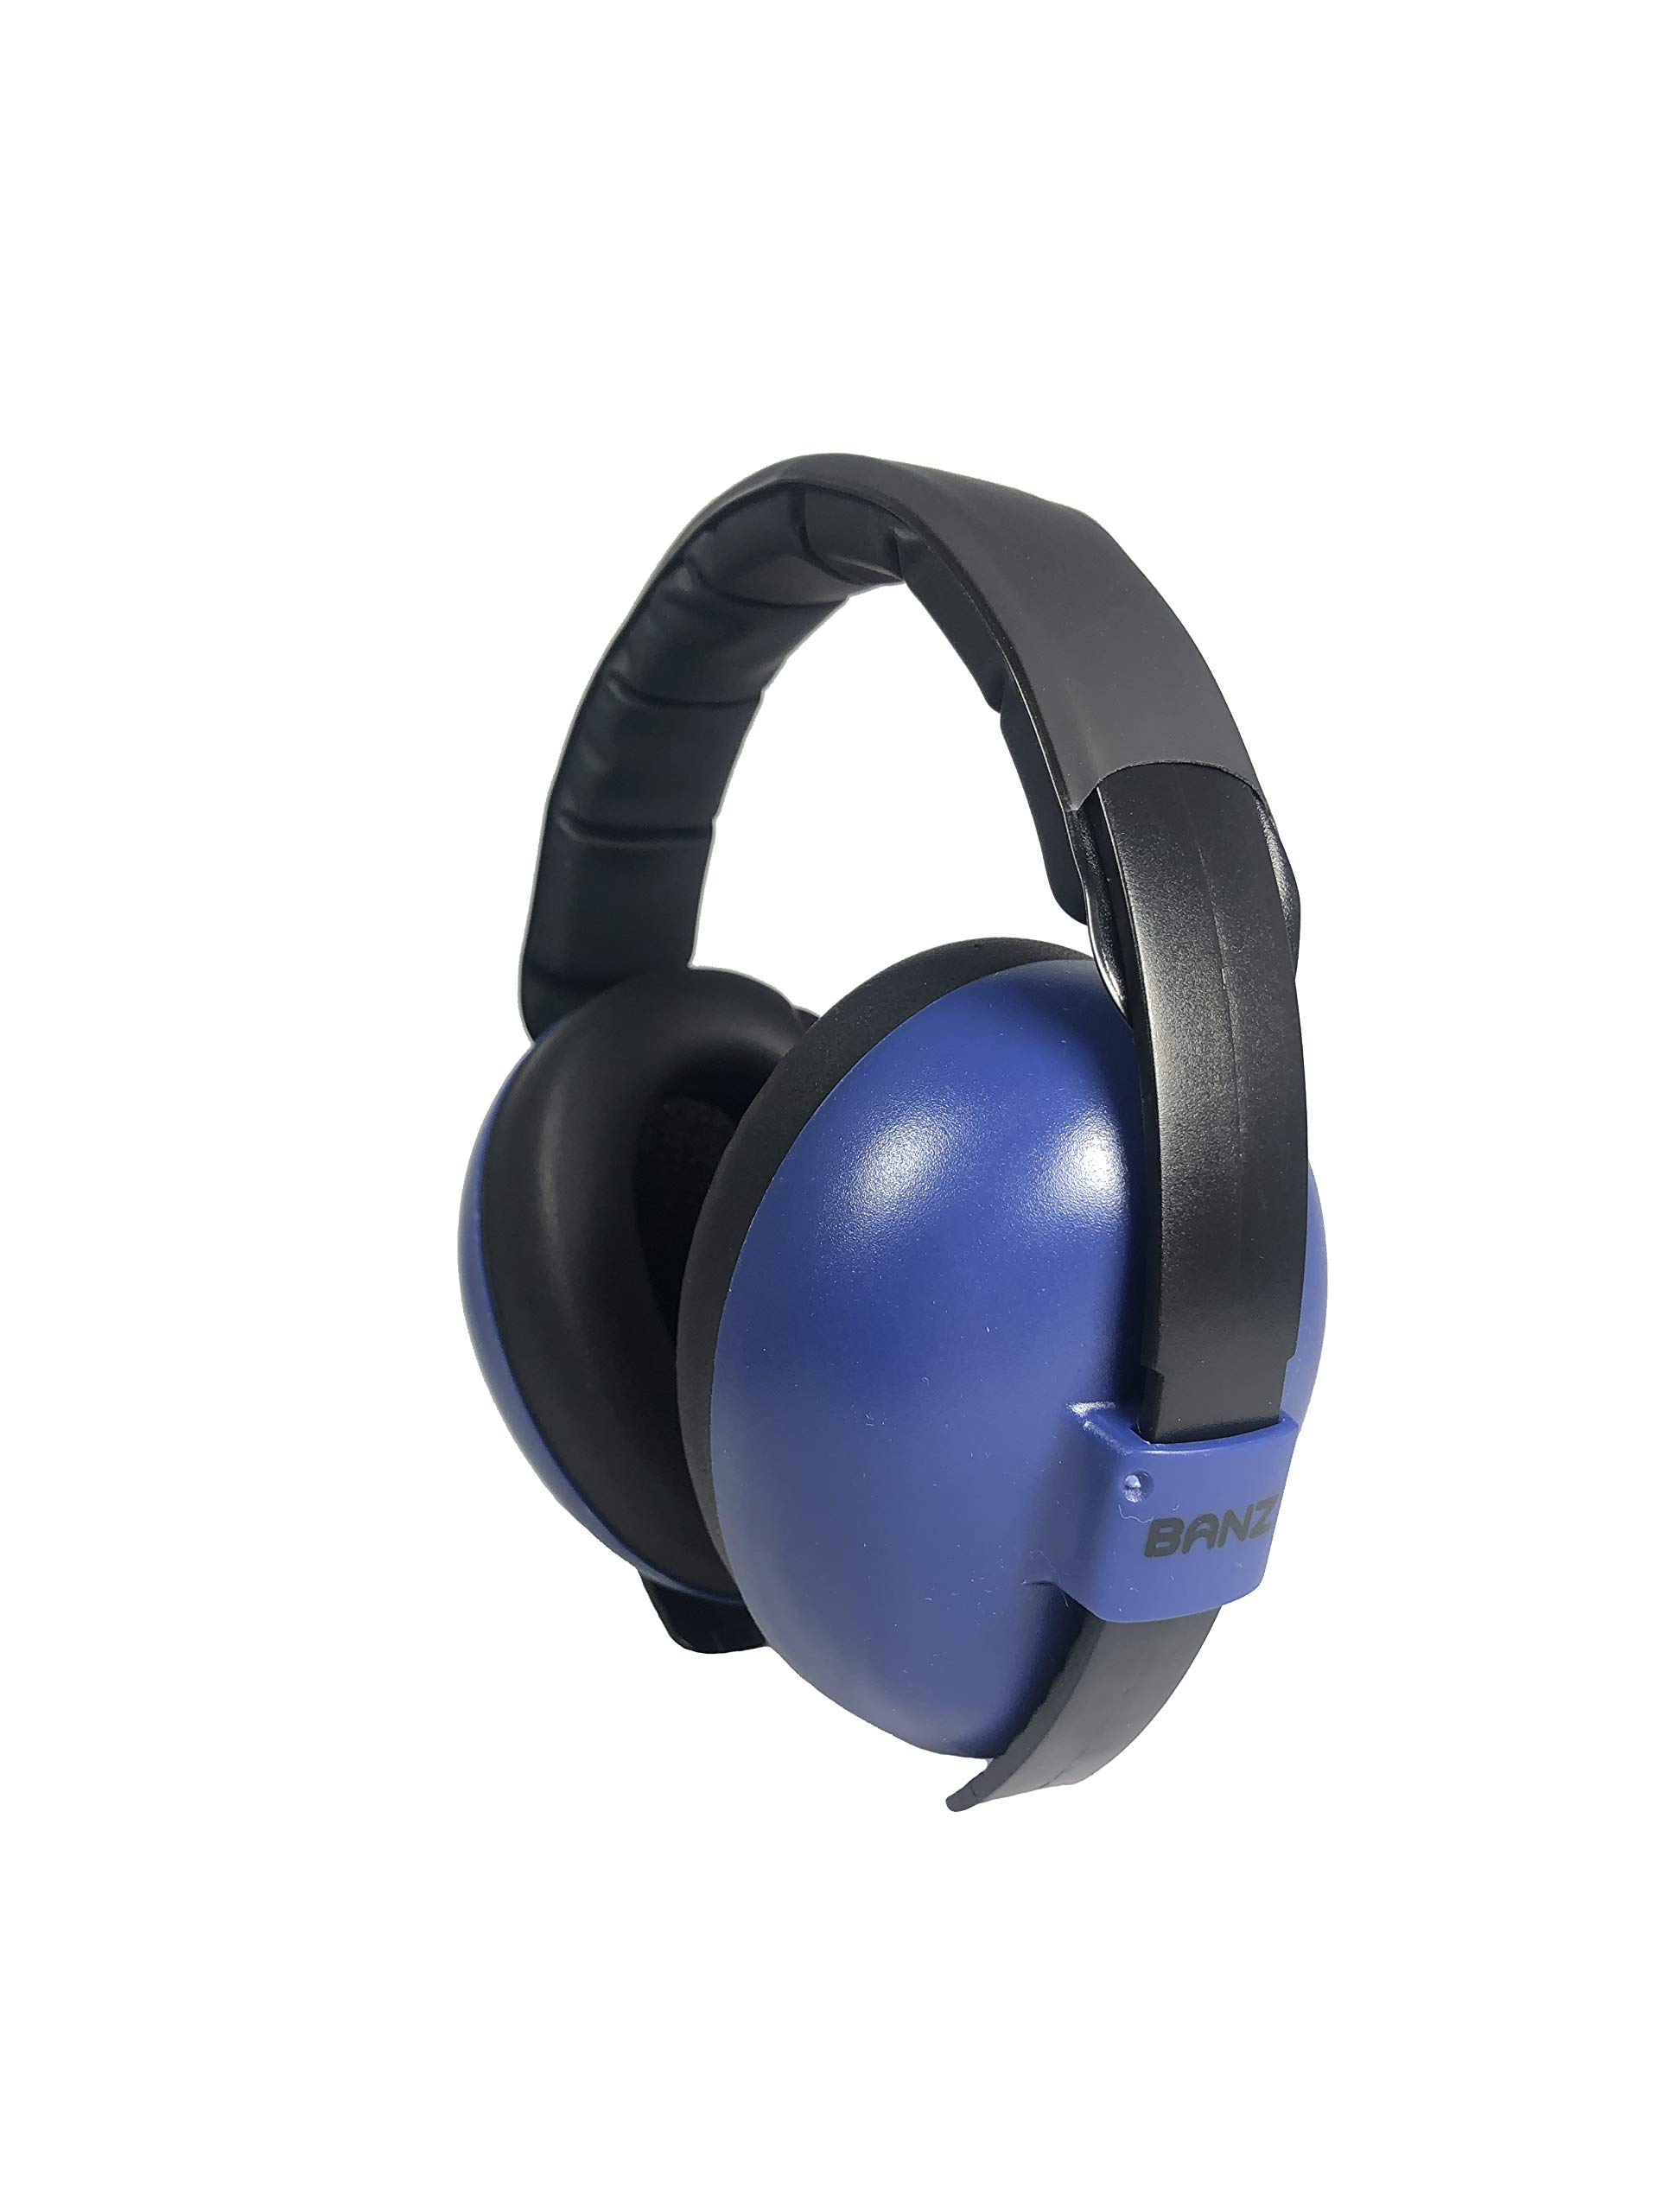 Baby Banz Earmuffs Ear Protection – The Original Infant & Toddler Hearing Headphones – The Best Design for Ages 0-2 Years – Industry Leading Noise Reduction Rating – Block Sound – Fireworks (Navy)